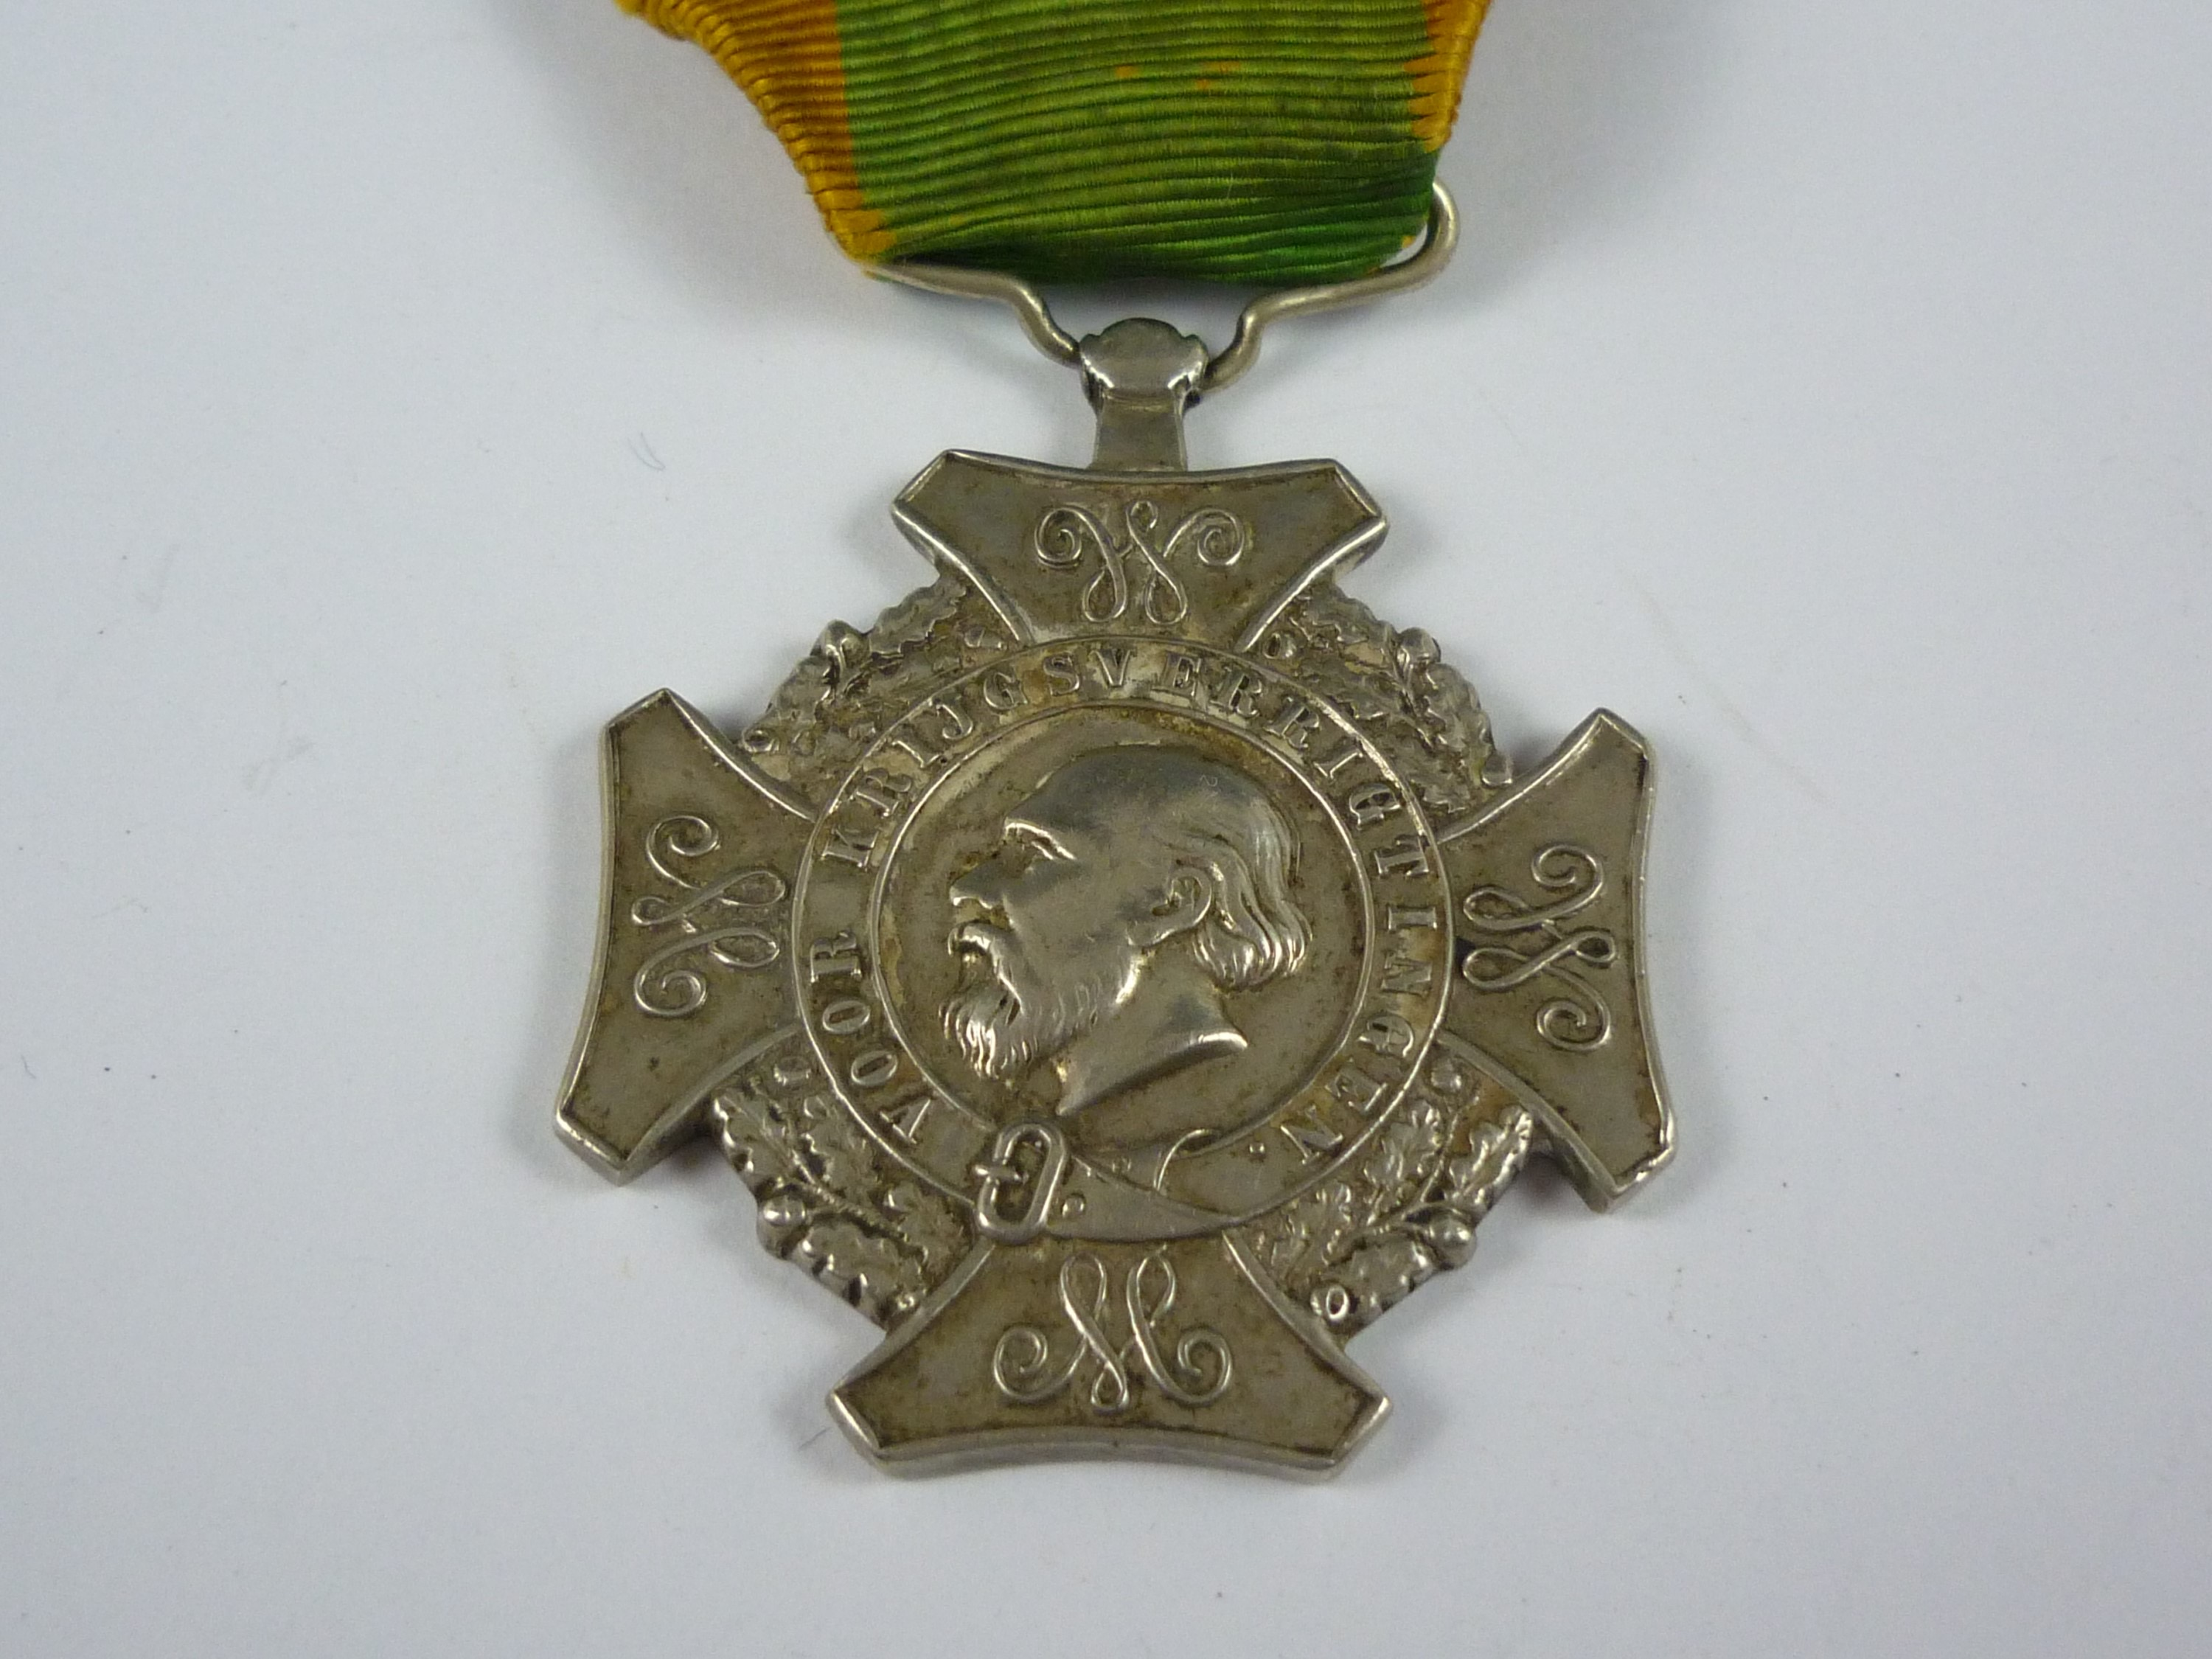 Lot 2 - A Netherlands Cross for Important War Actions medal / Expedition Cross with 'Atjeh 1873-1896'